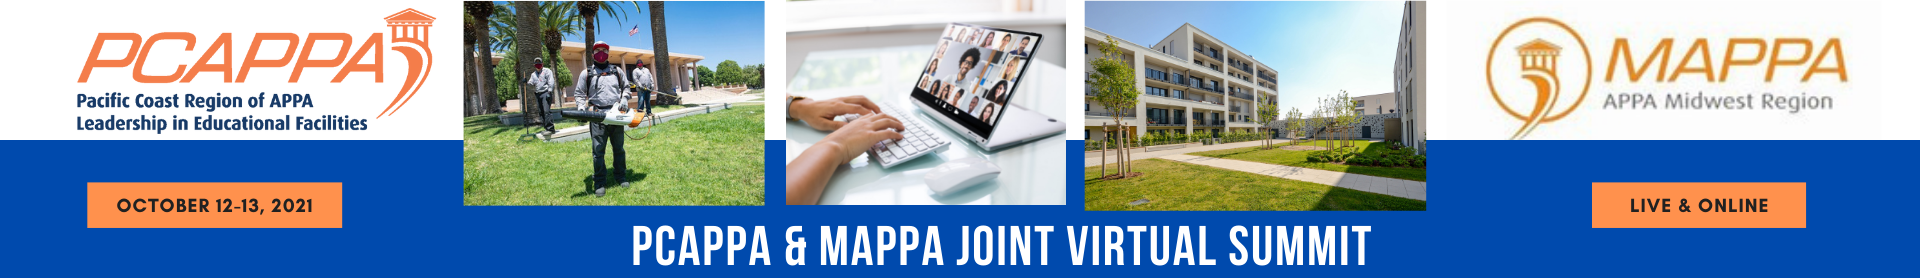 PCAPPA & MAPPA Joint Virtual Summit 2021  Event Banner